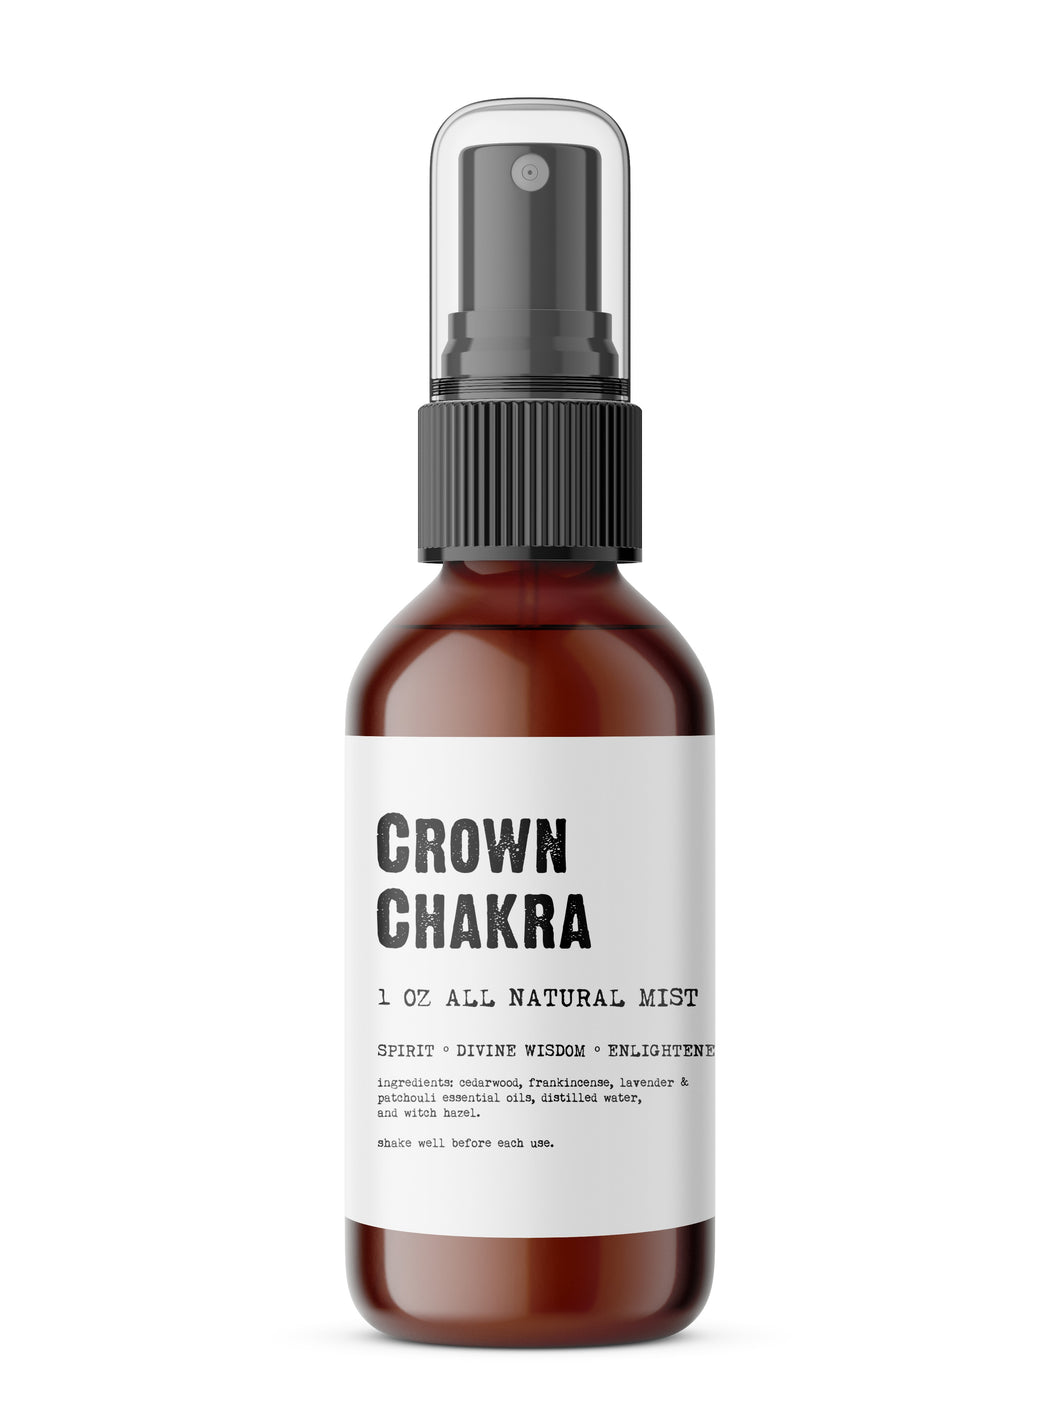 Crown Chakra - Meditation/Body Mist - Made with All Natural Ingredients